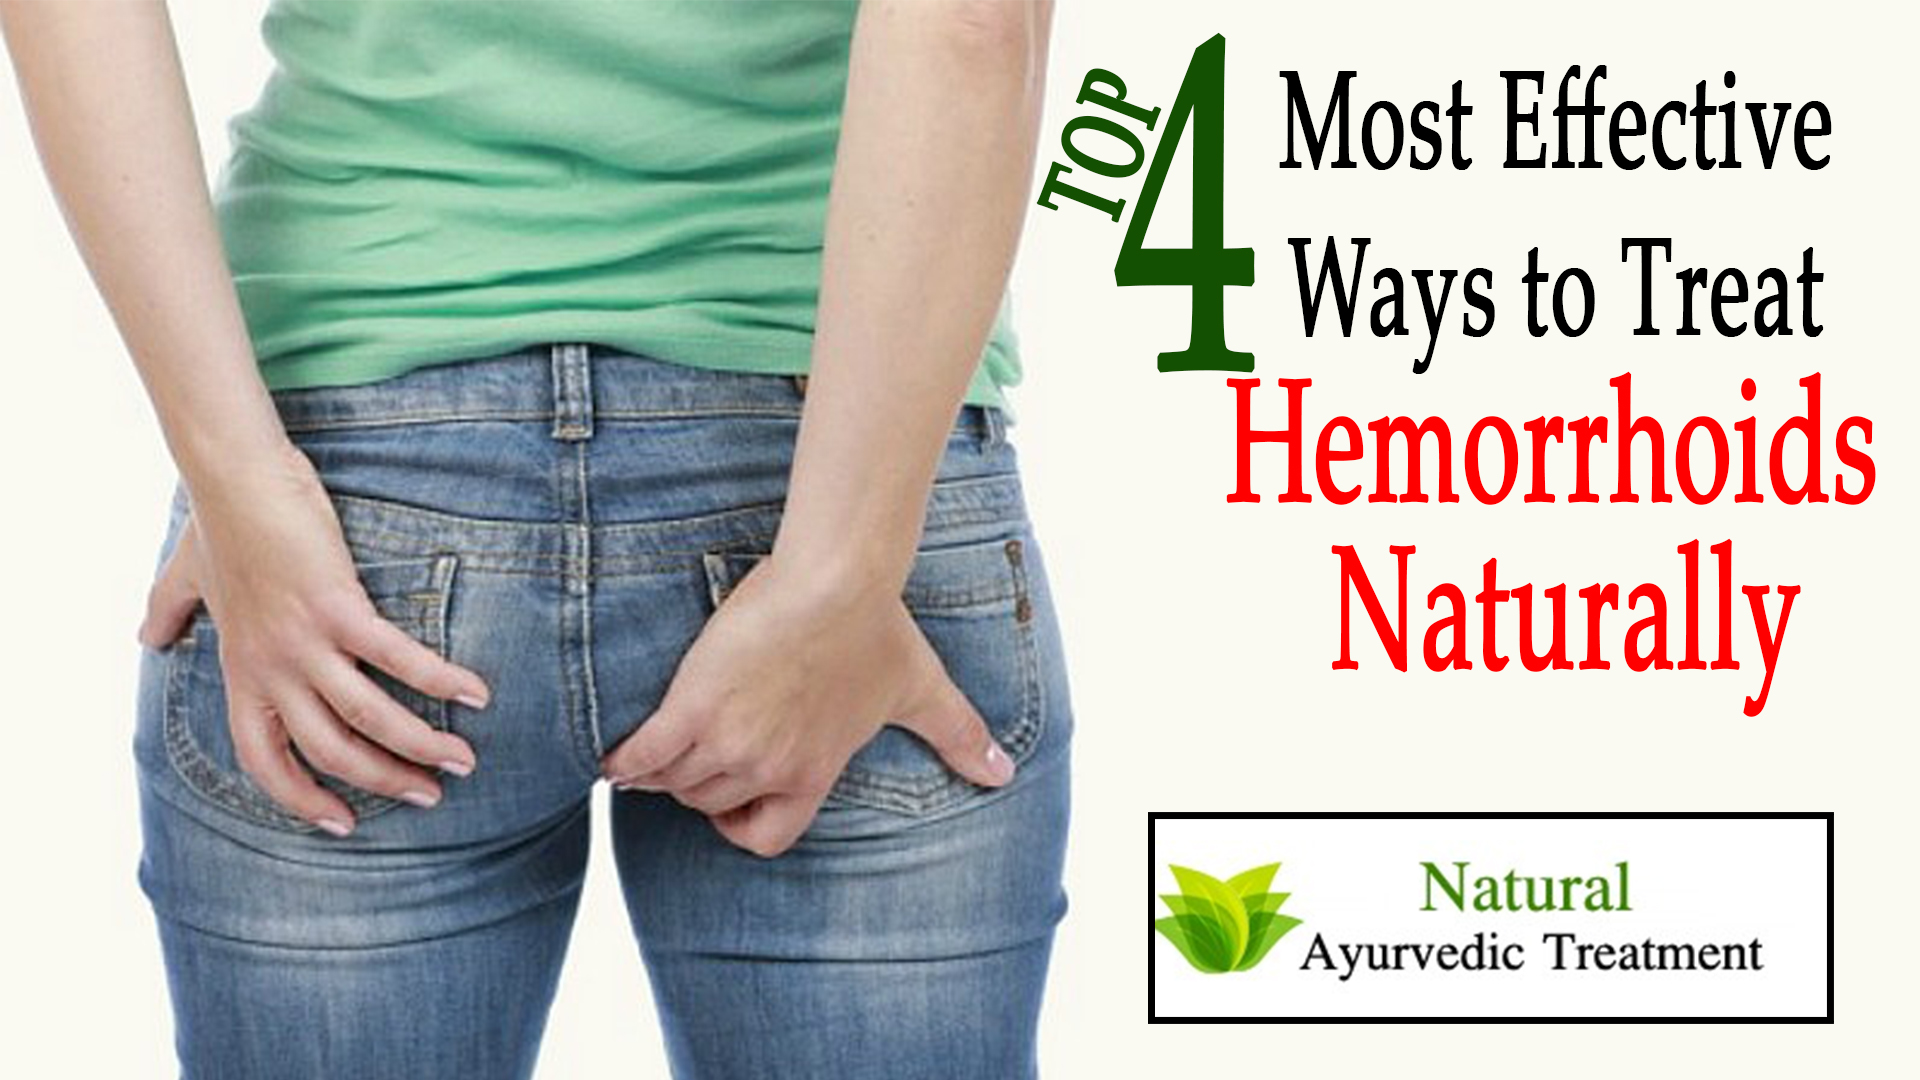 Top 4 Most Effective Ways to Treat Hemorrhoids Naturally